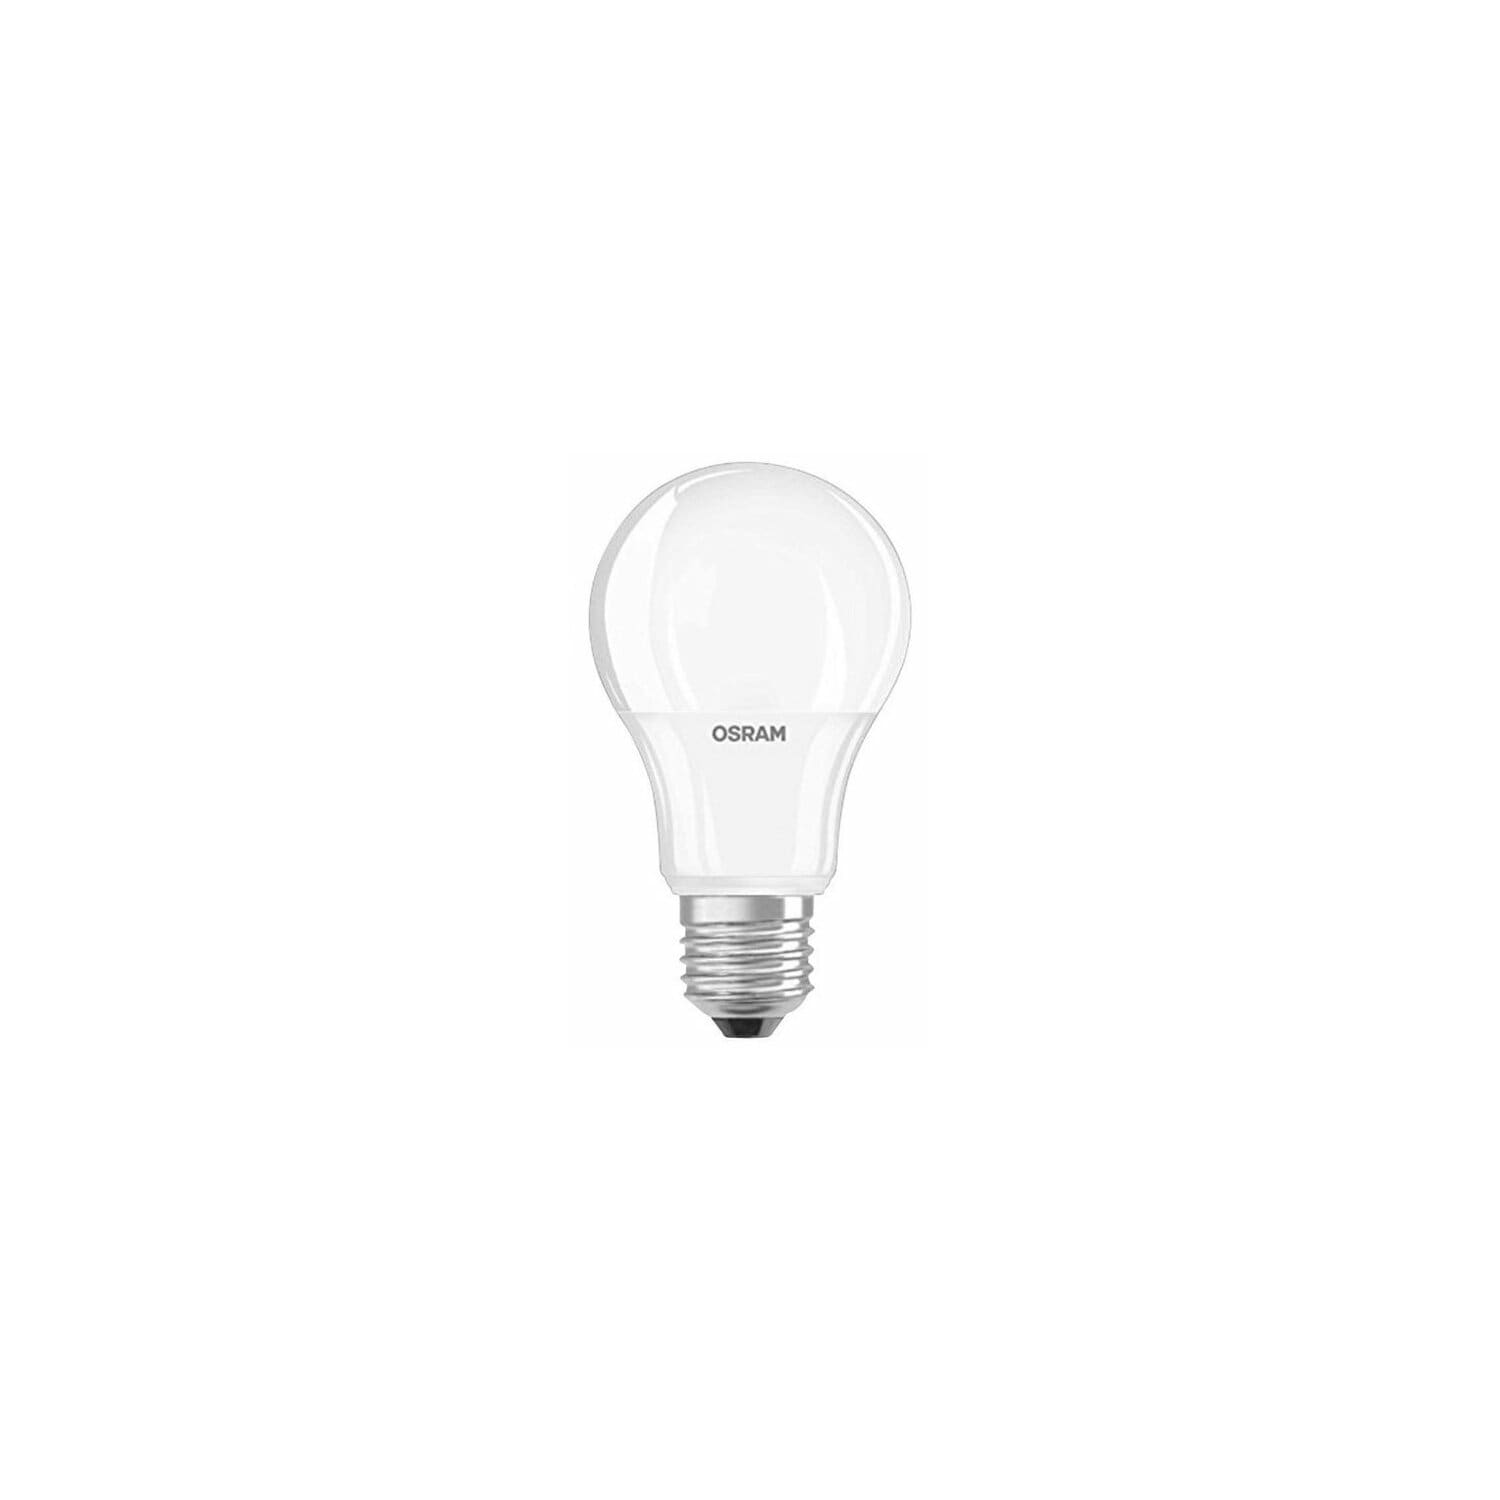 Żarówka LED OSRAM VALUE CLA60 10W/865220 240VFRE27